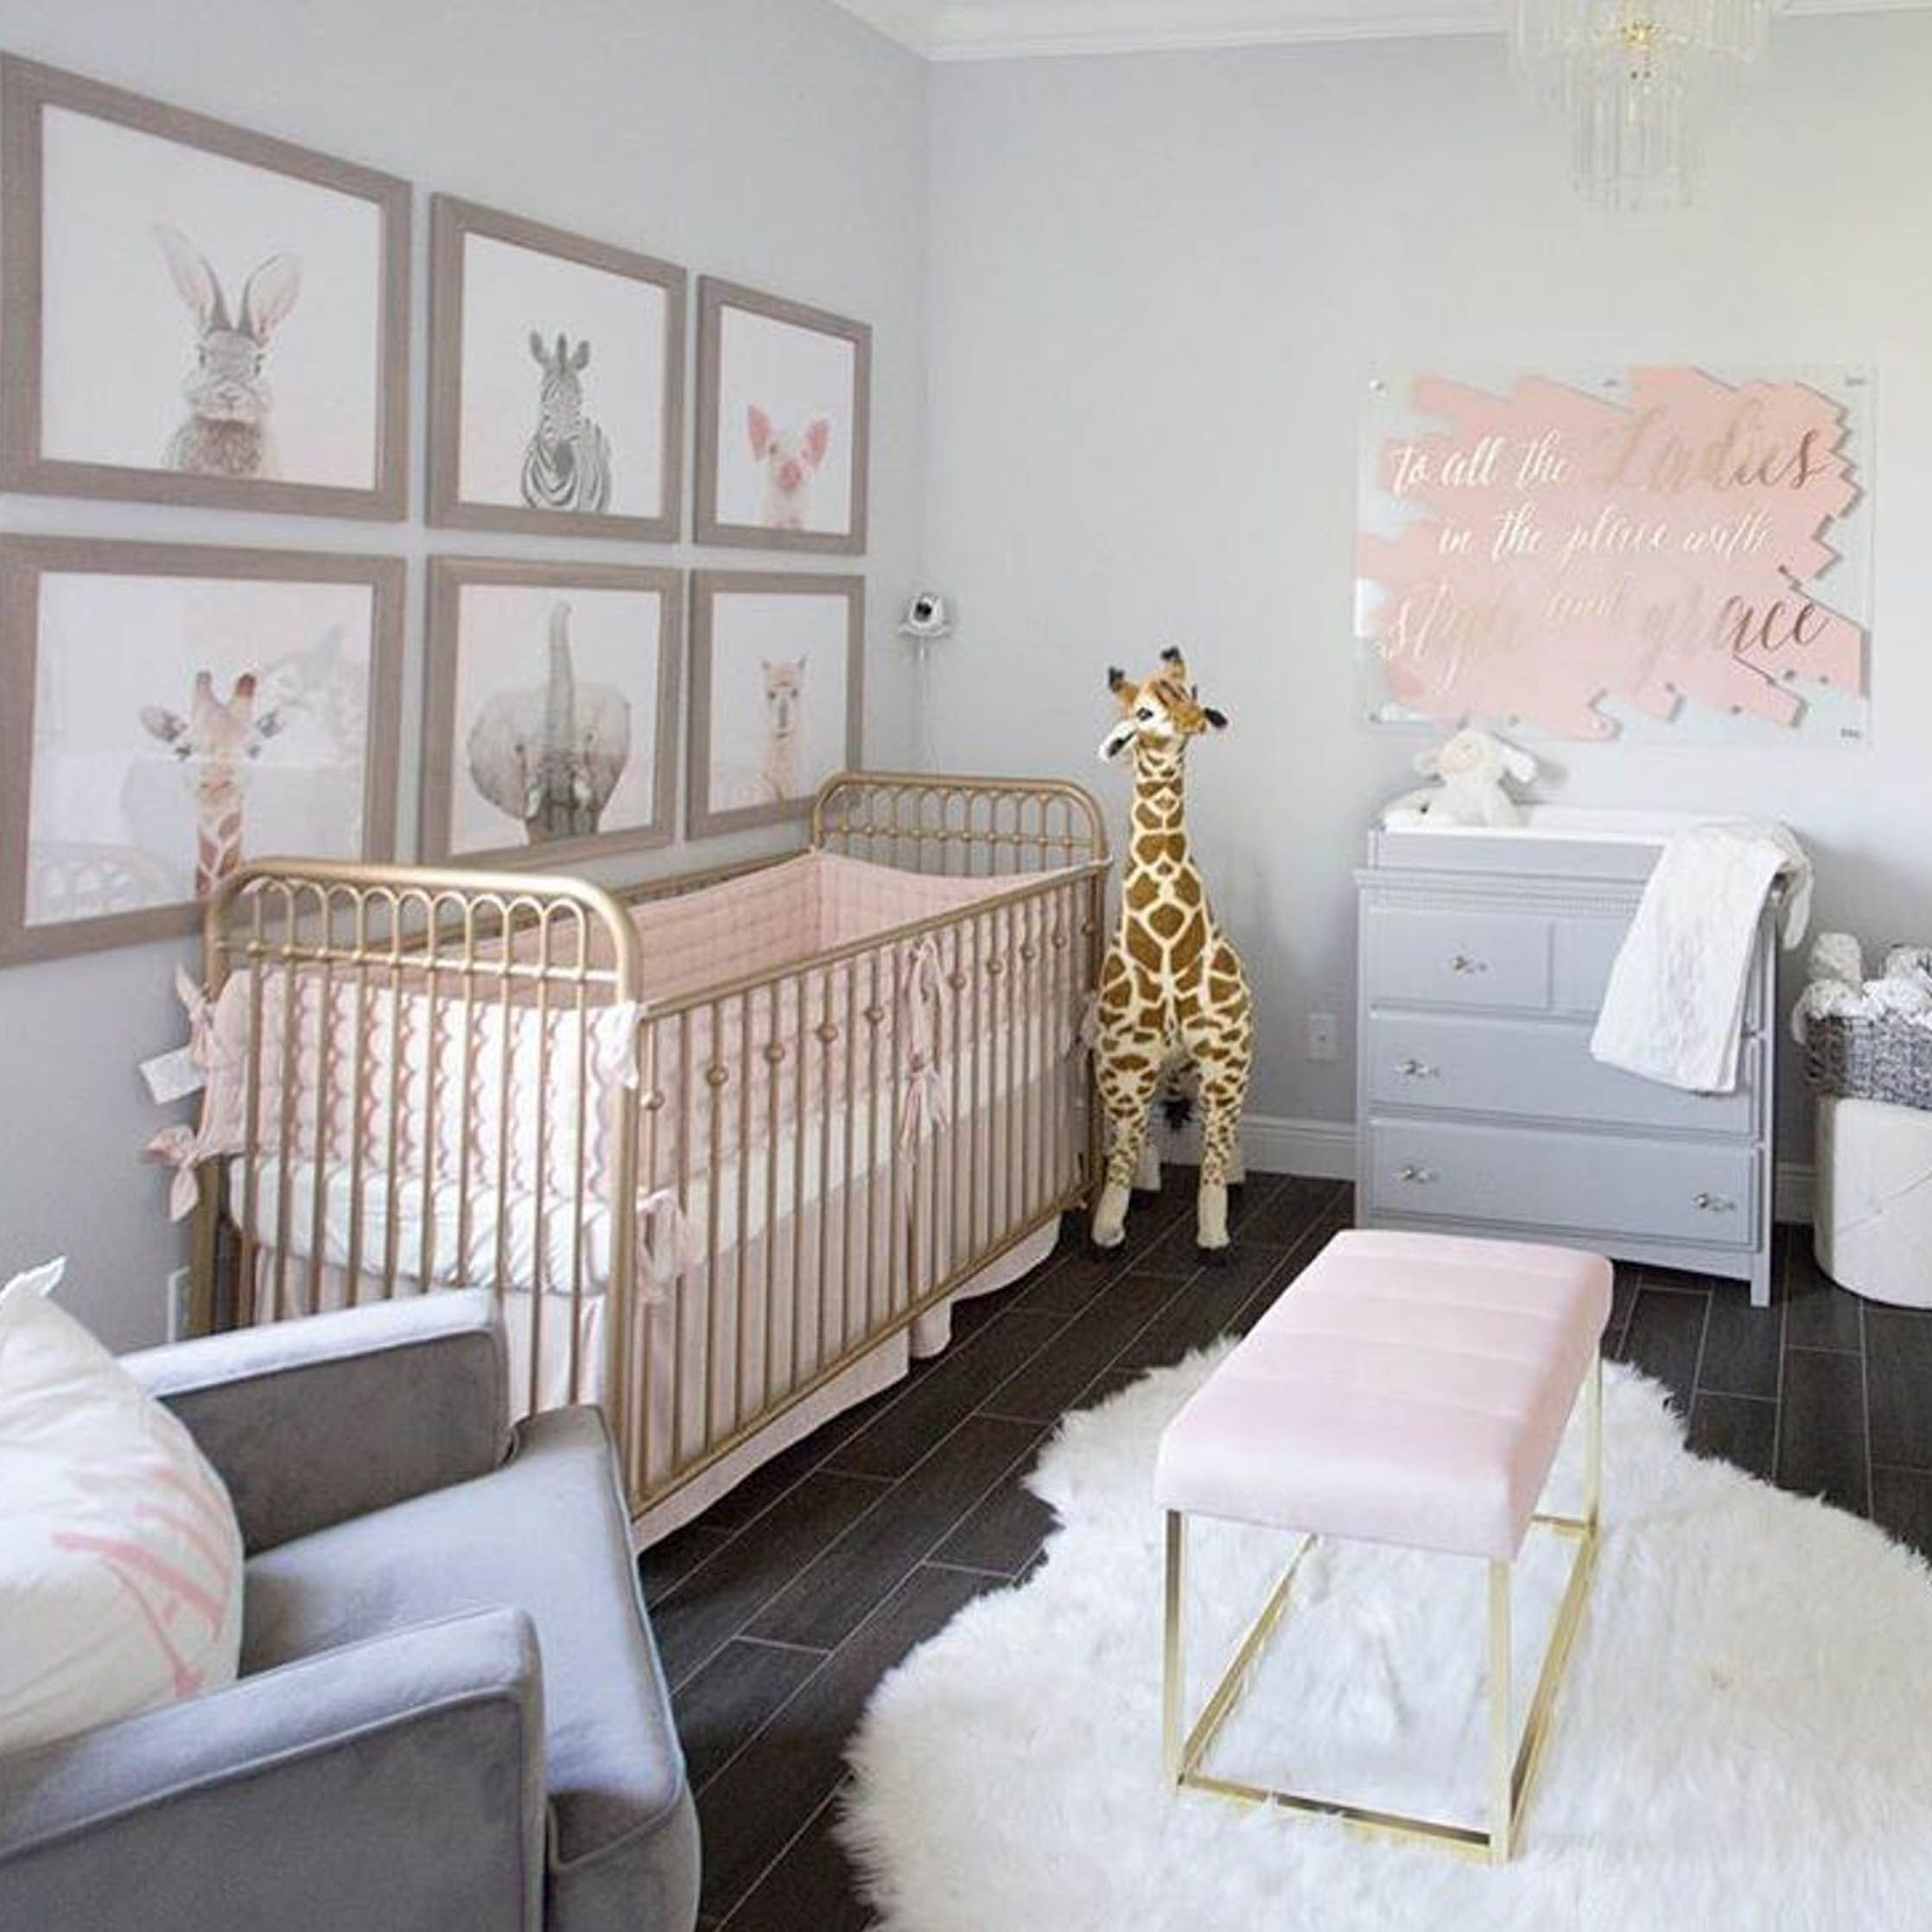 Baby Nursery Design Ideas And Inspiration: Here's What's Trending In The Nursery